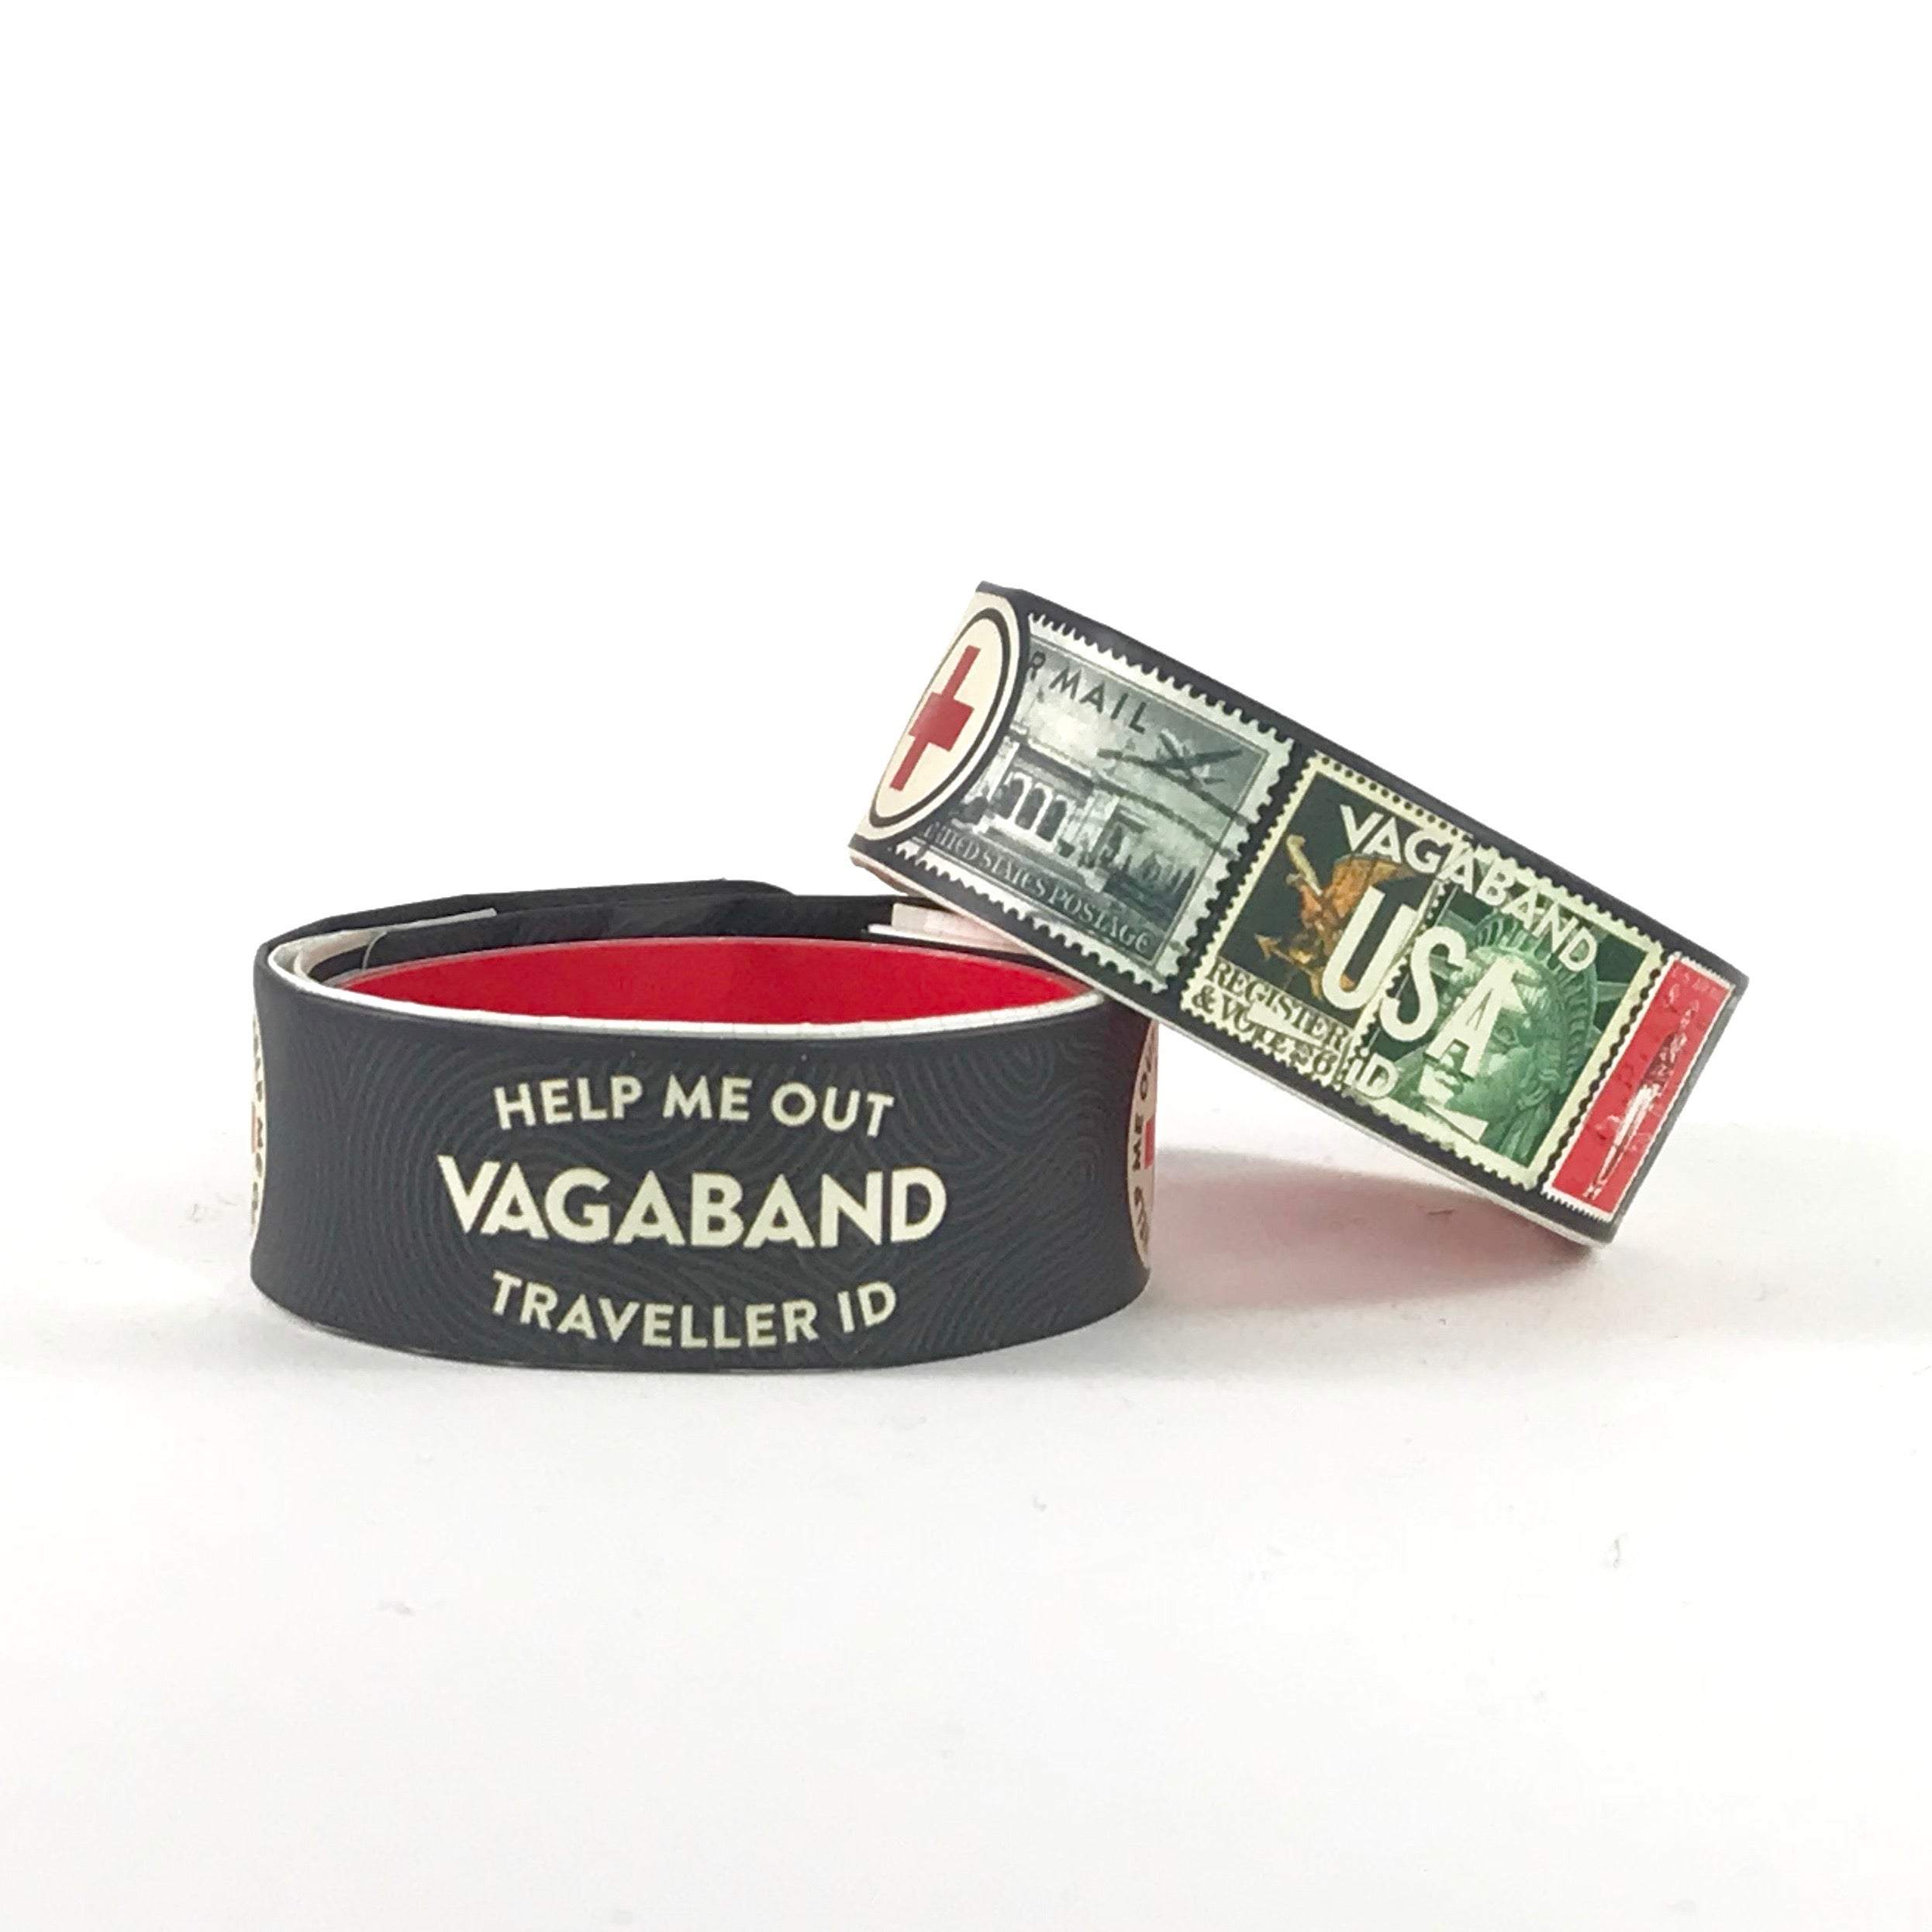 Destination U.S.A Vagaband - Vagaband LTD